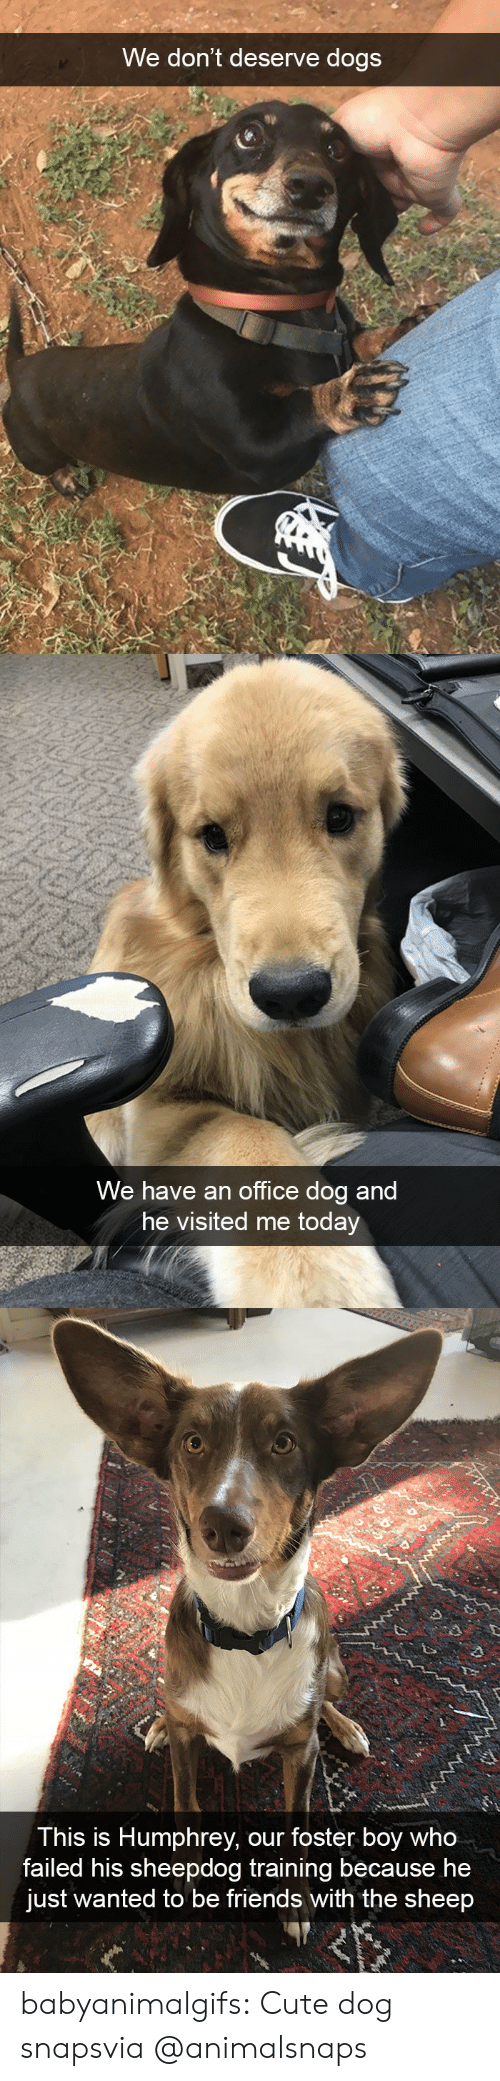 sheep: We don't deserve dogs   We have an office dog and  he visited me today   This is Humphrey, our foster boy who  failed his sheepdog training because he  just wanted to be friends with the sheep babyanimalgifs:  Cute dog snapsvia @animalsnaps